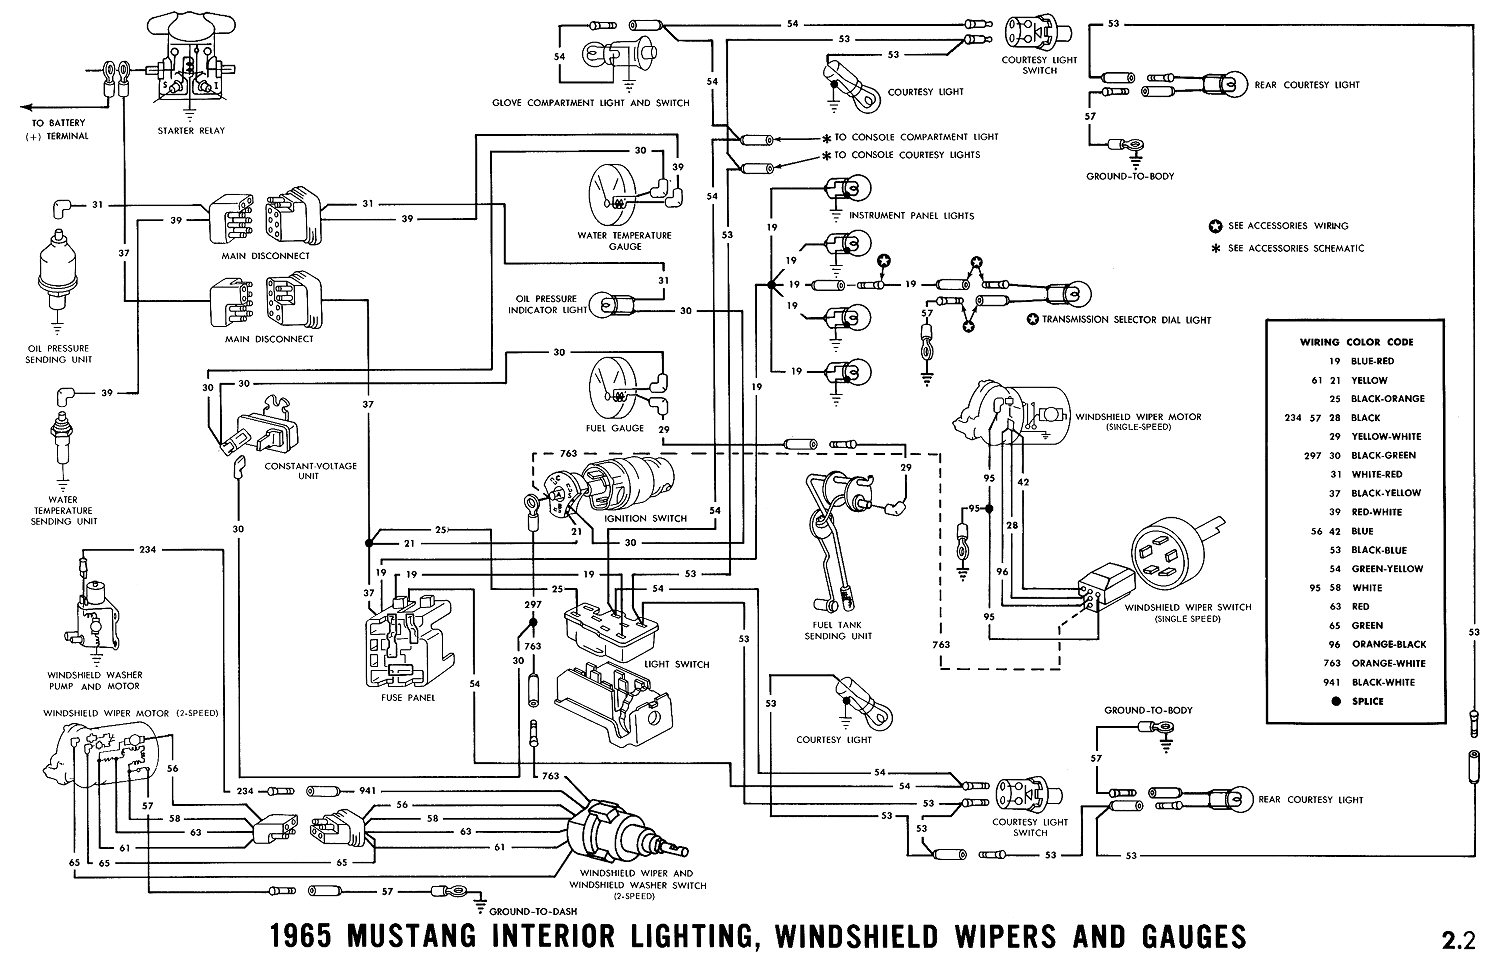 1965 Mustang Wiper Motor Wiring Completed Diagrams Switch Ford Diagram Data Blower